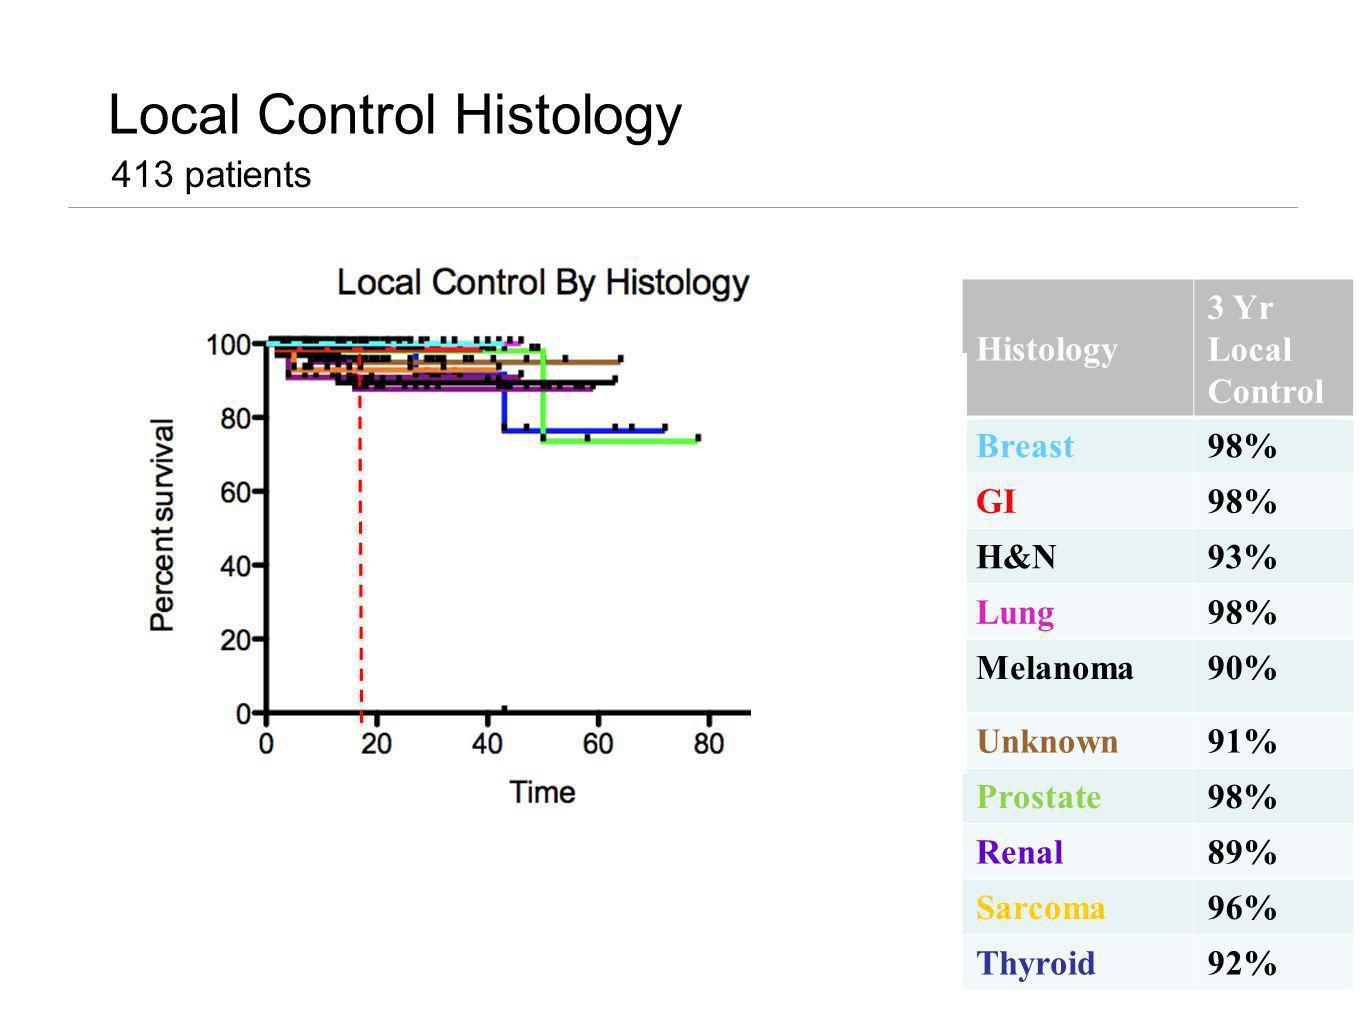 Local Control Histology